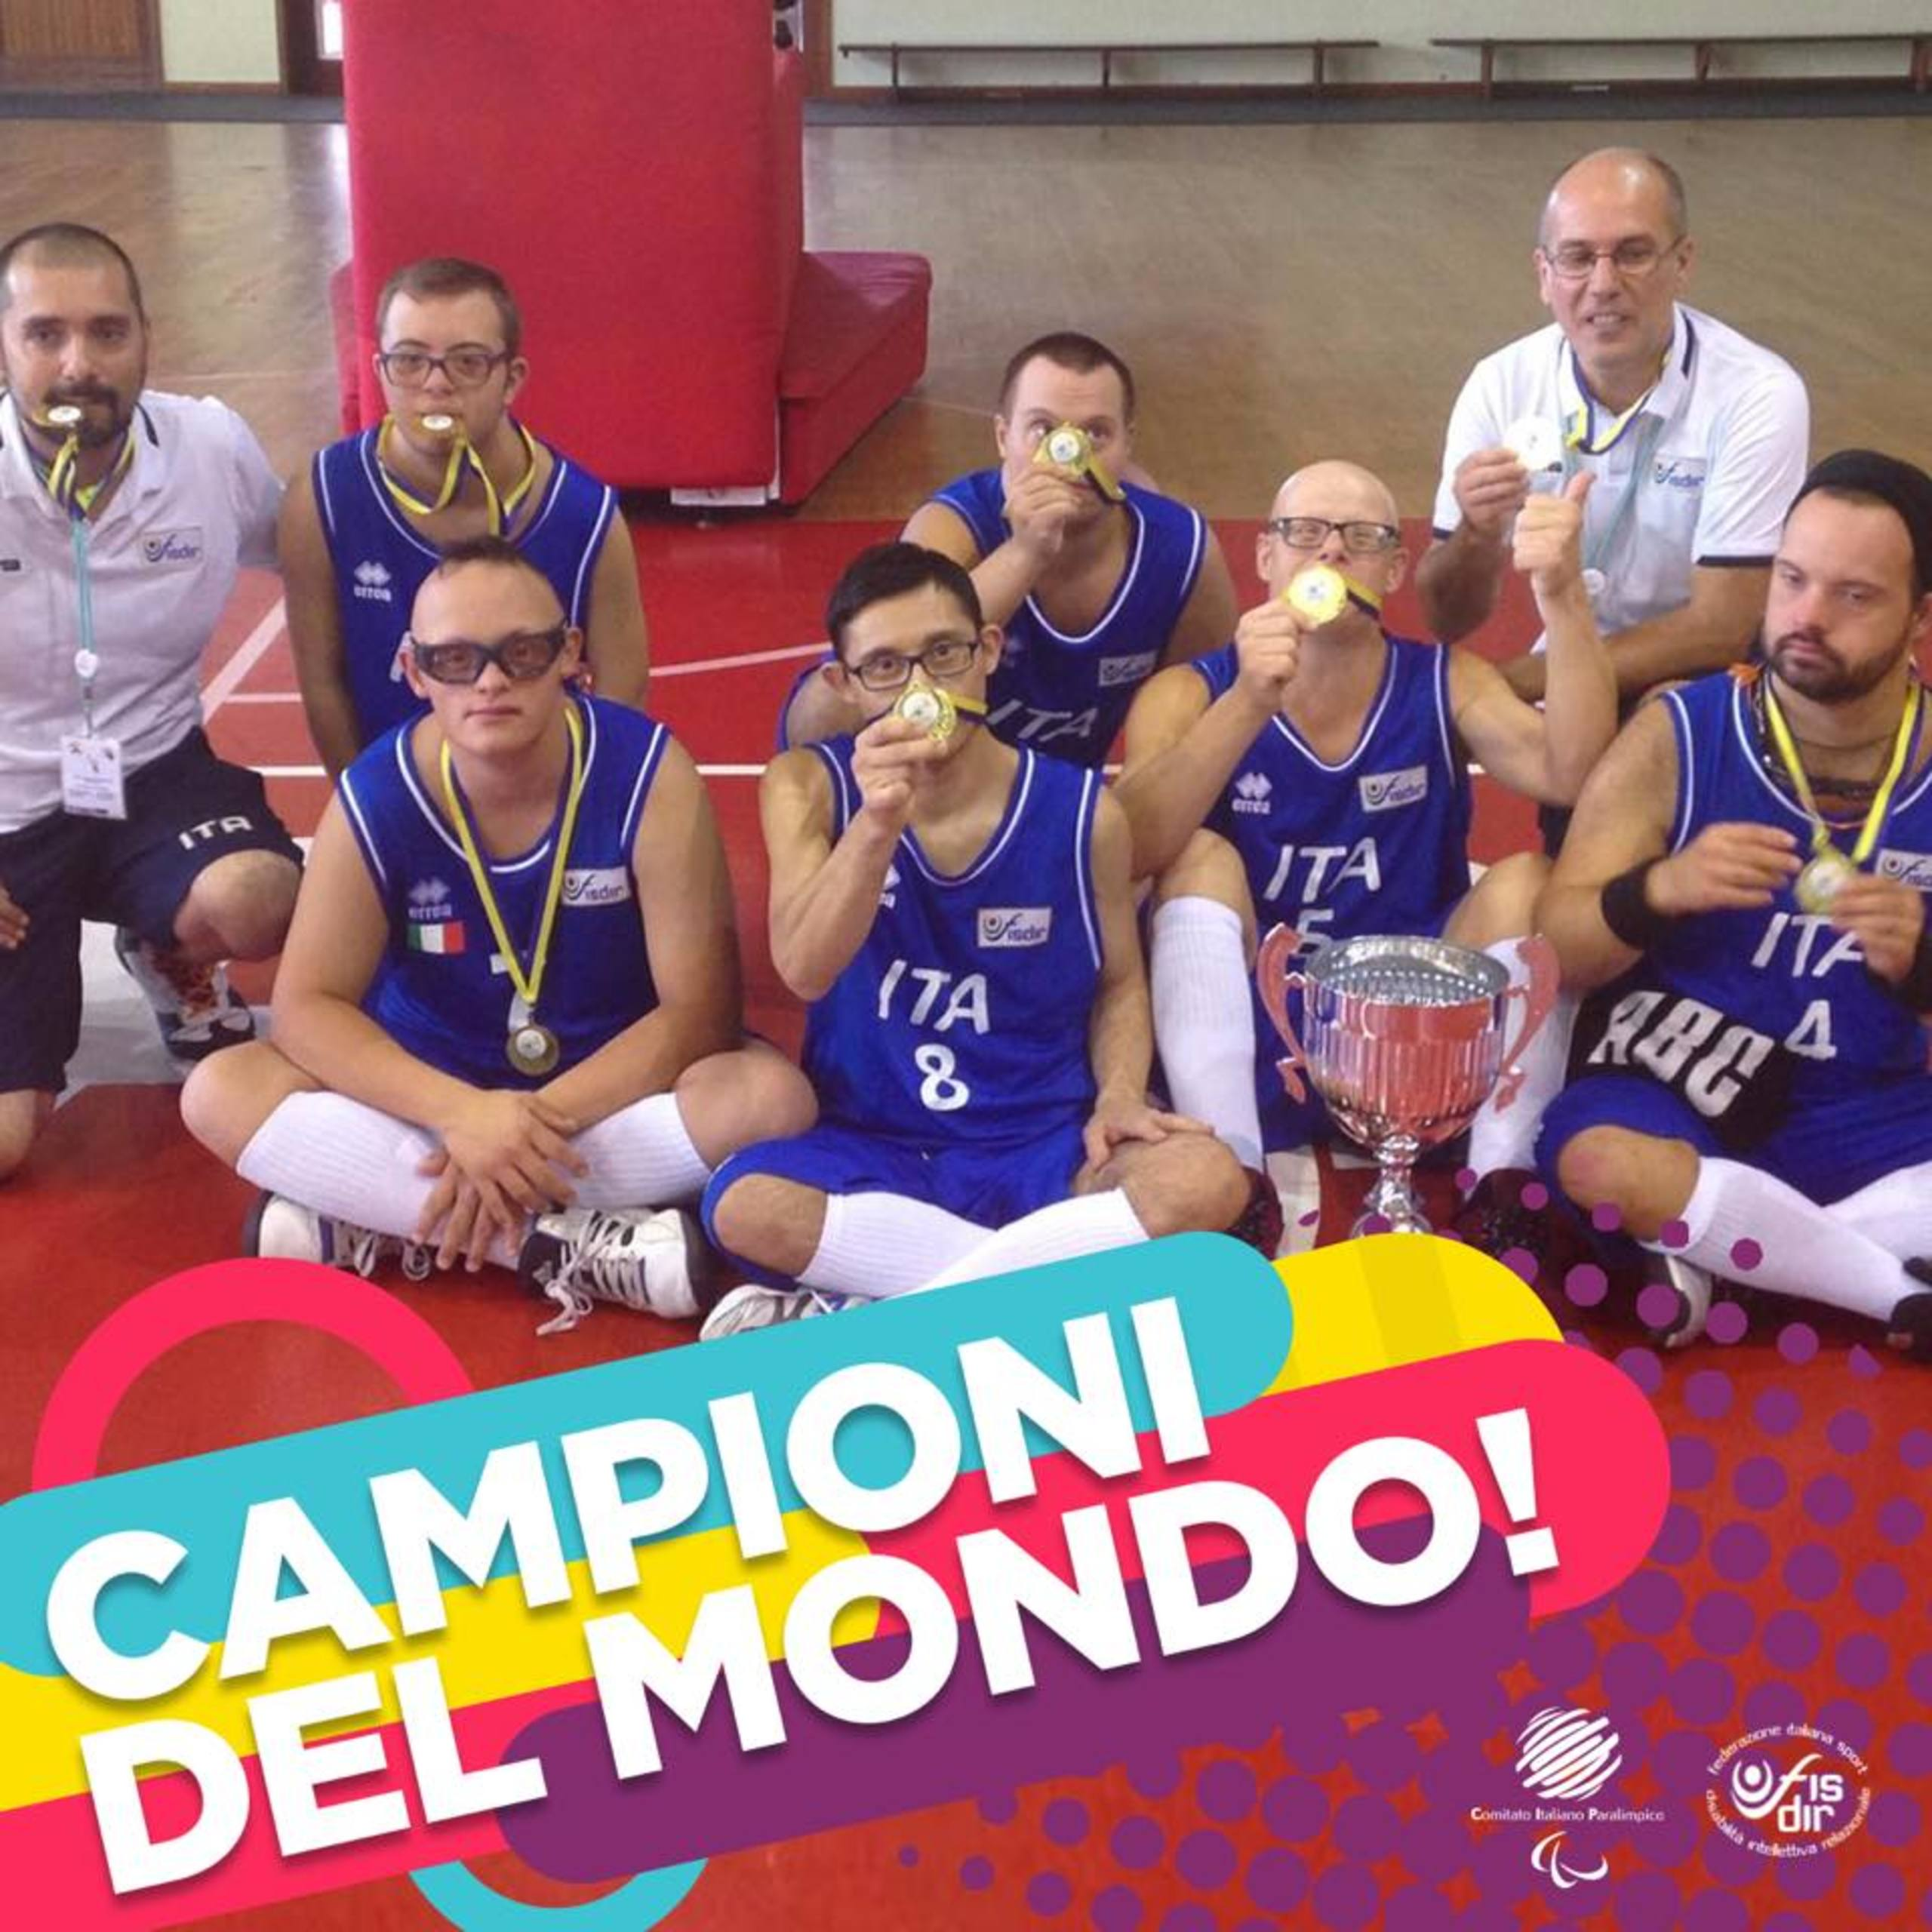 Nazionale italiana di Basket + Sindrome di Down = campione del mondo - Featured image